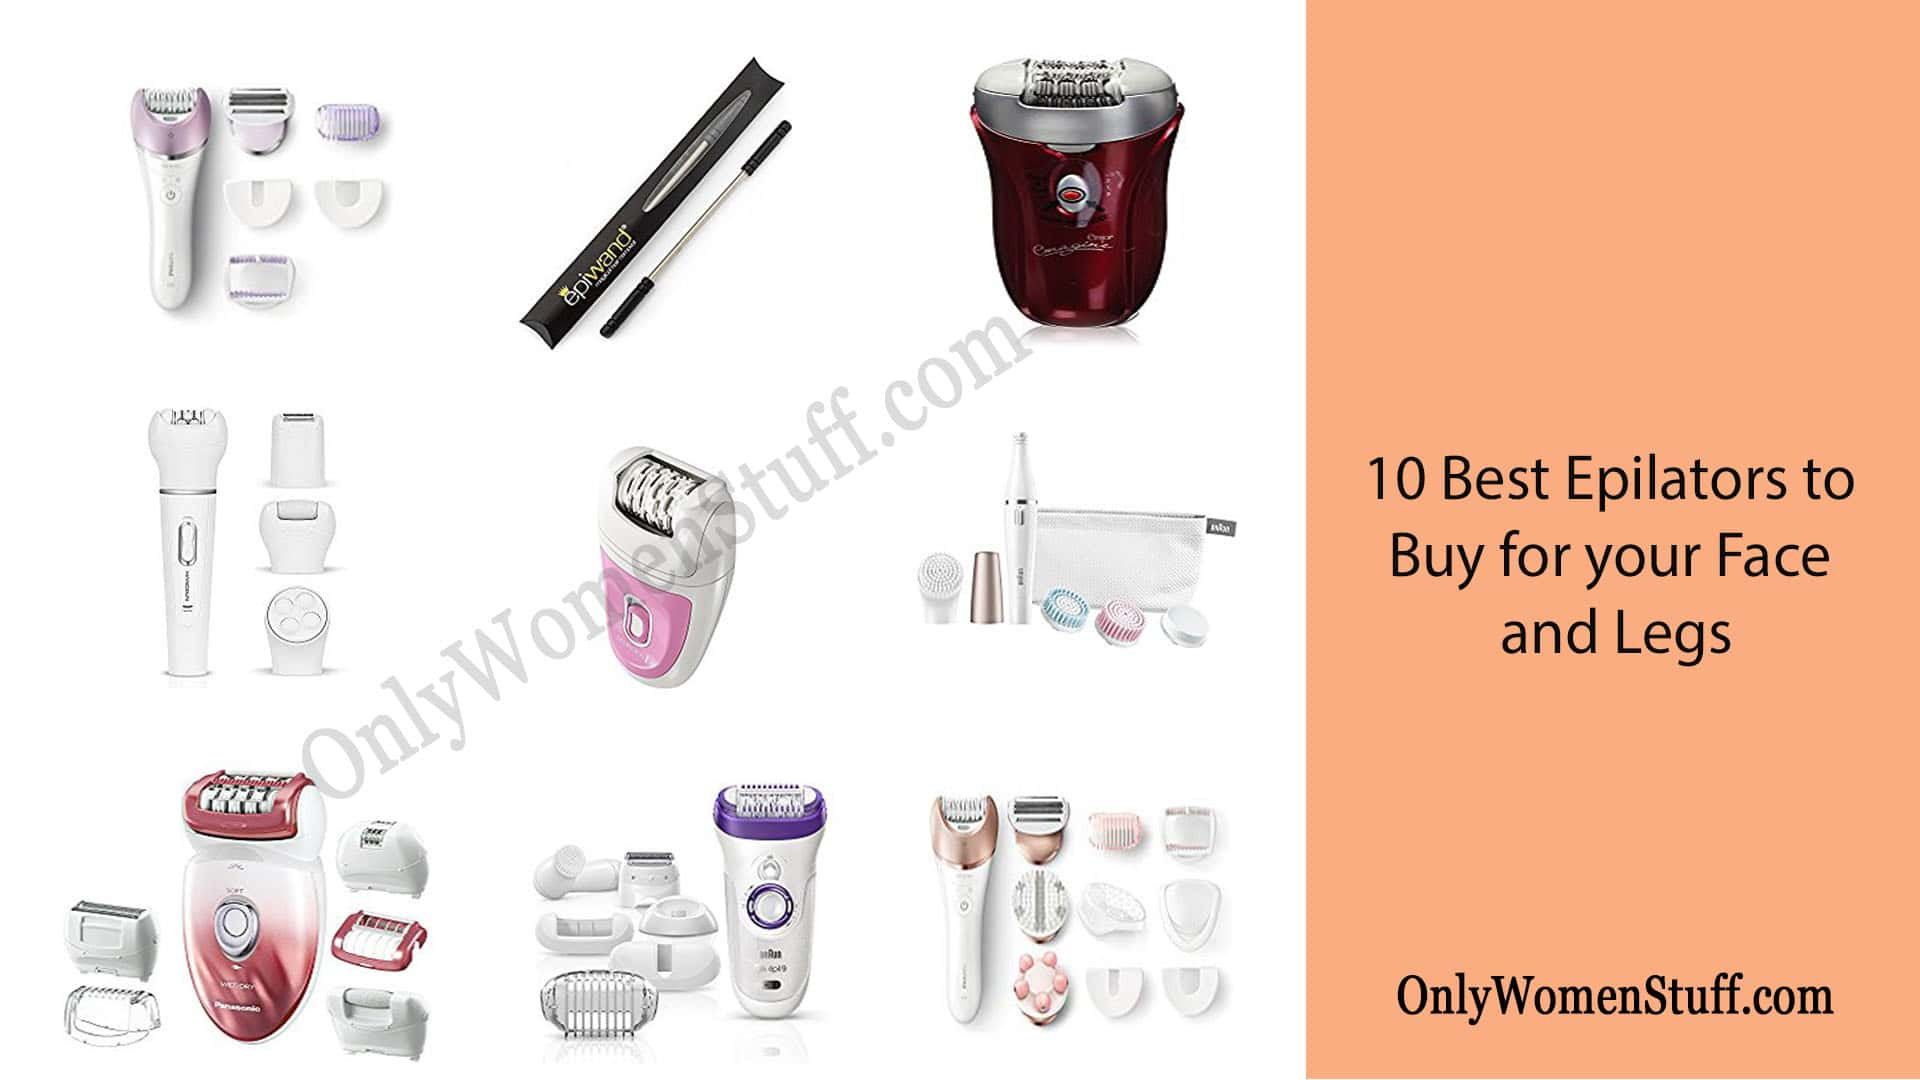 best epilator for face best epilator 2018 best cheap epilator best epilator for face best epilator for legs best epilator reviews best epilator with pros and cons best epilator for women best braun epilator